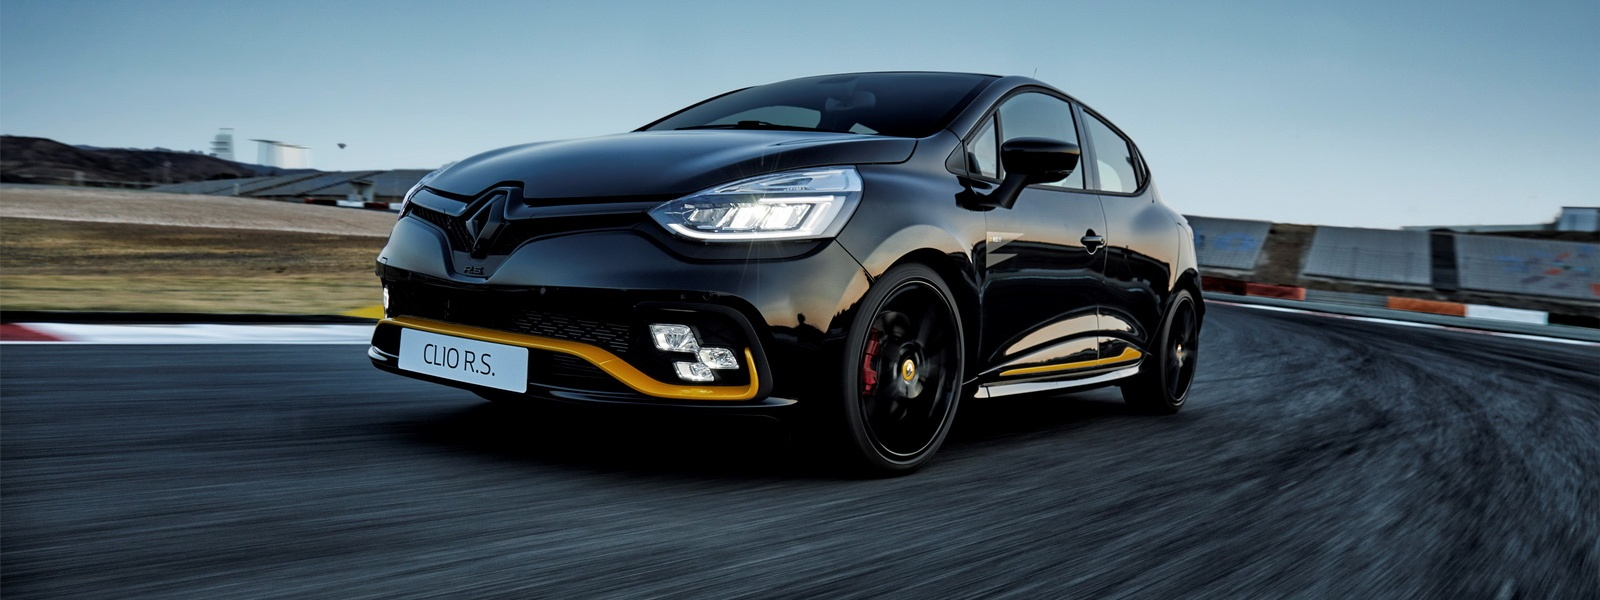 2018-renault-clio-rs-18-limited-edition-3.jpg